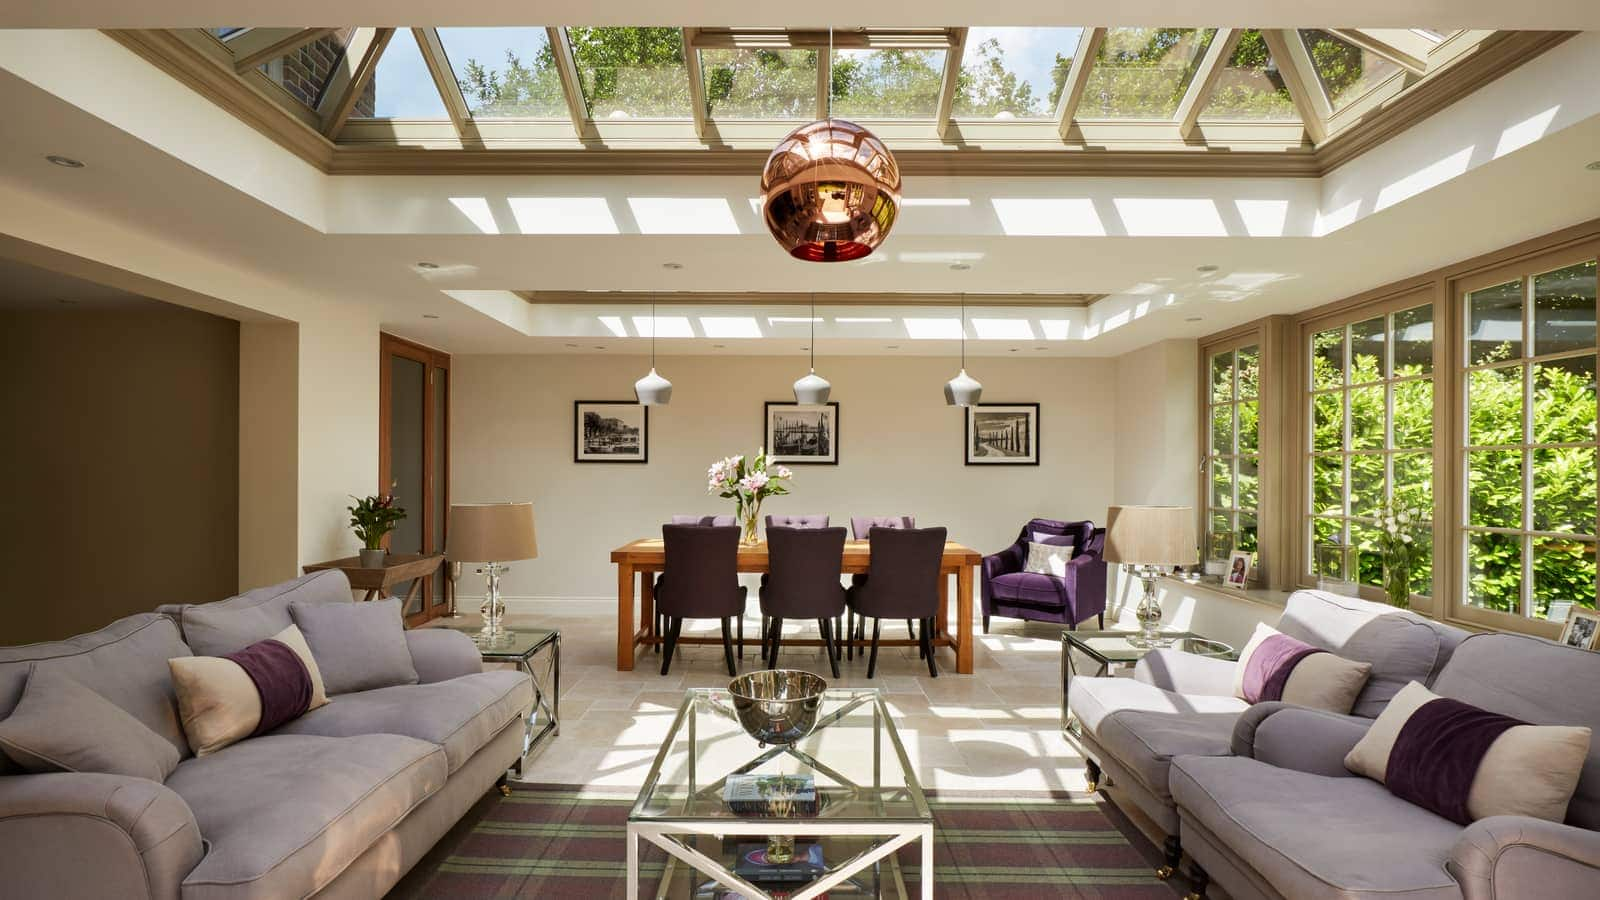 Orangery housing a formal dining area and comfortable sitting room area